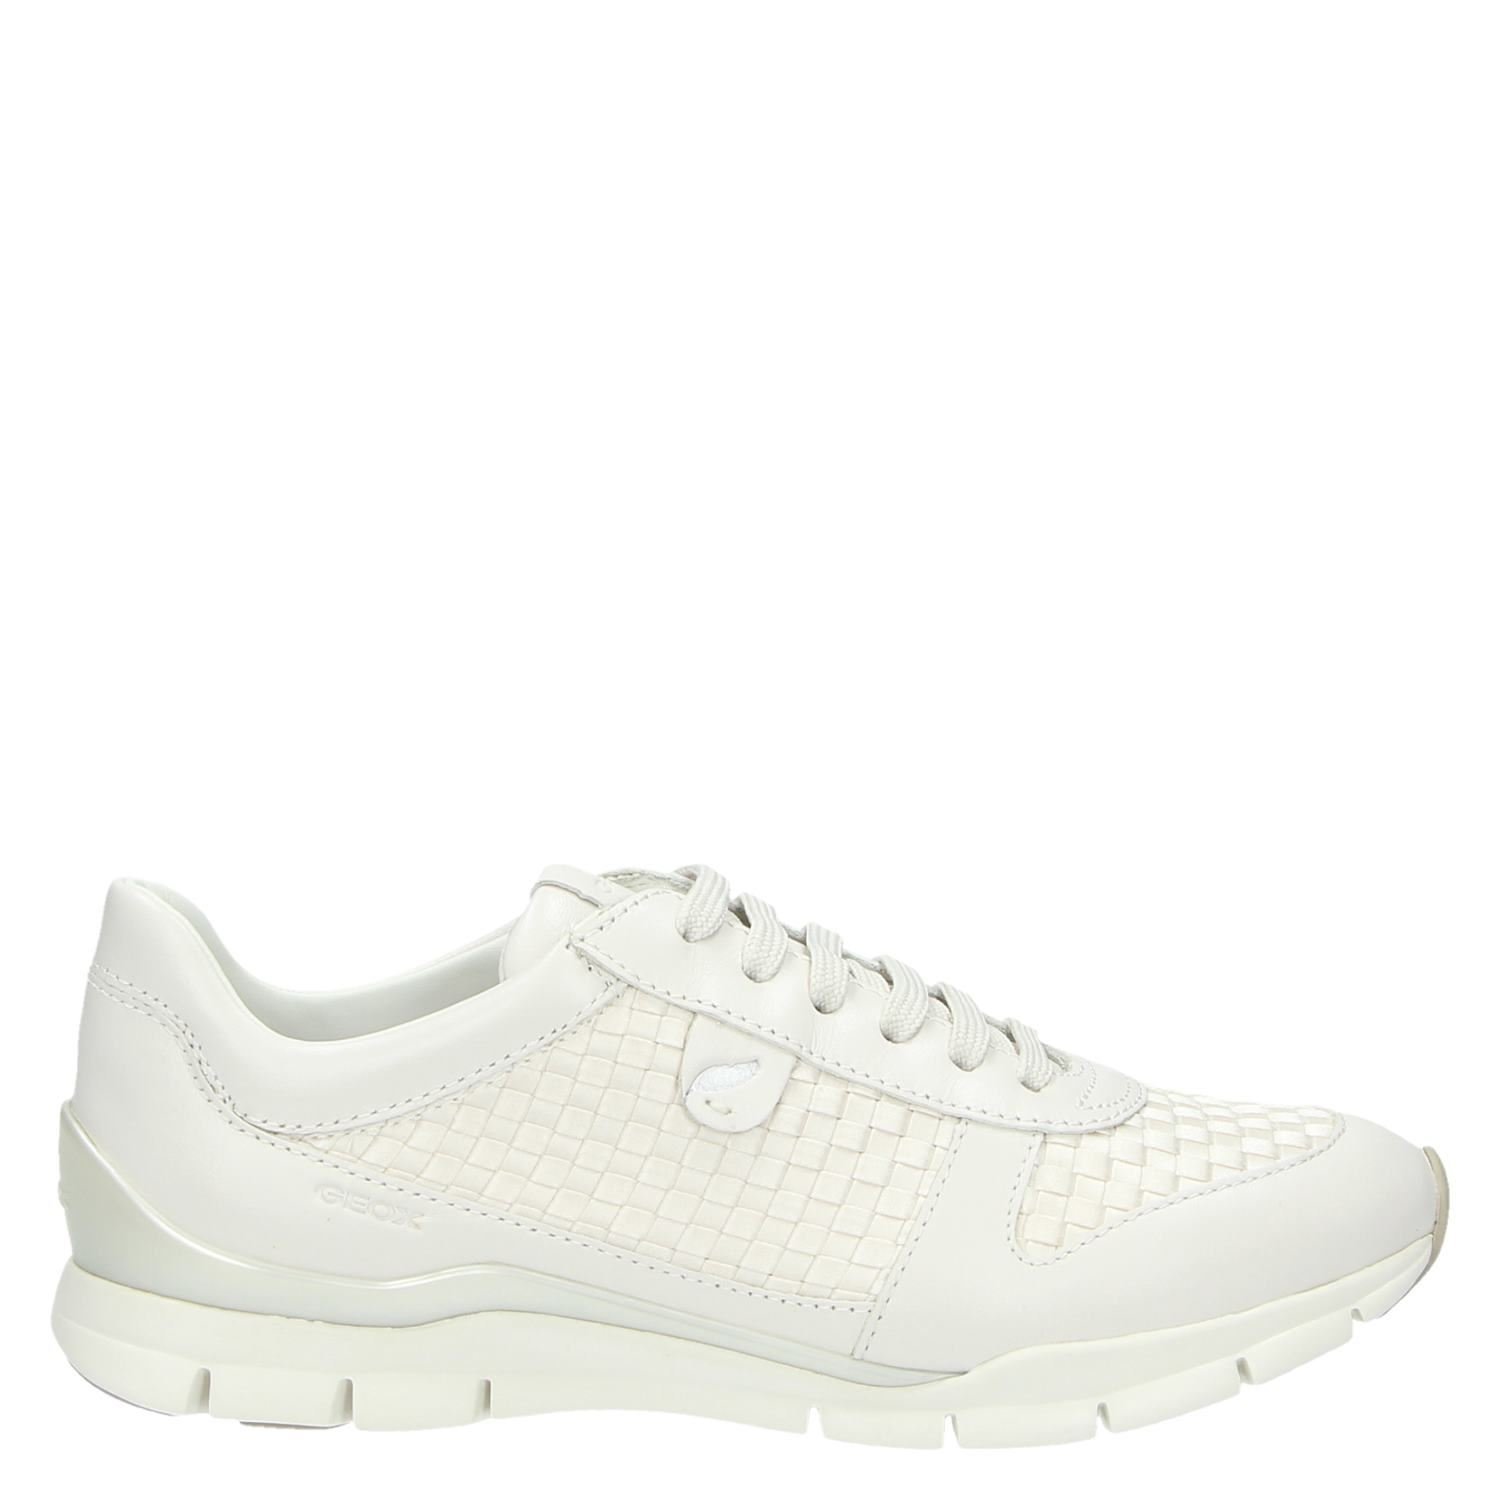 a3651c349d8aec Geox dames lage sneakers wit